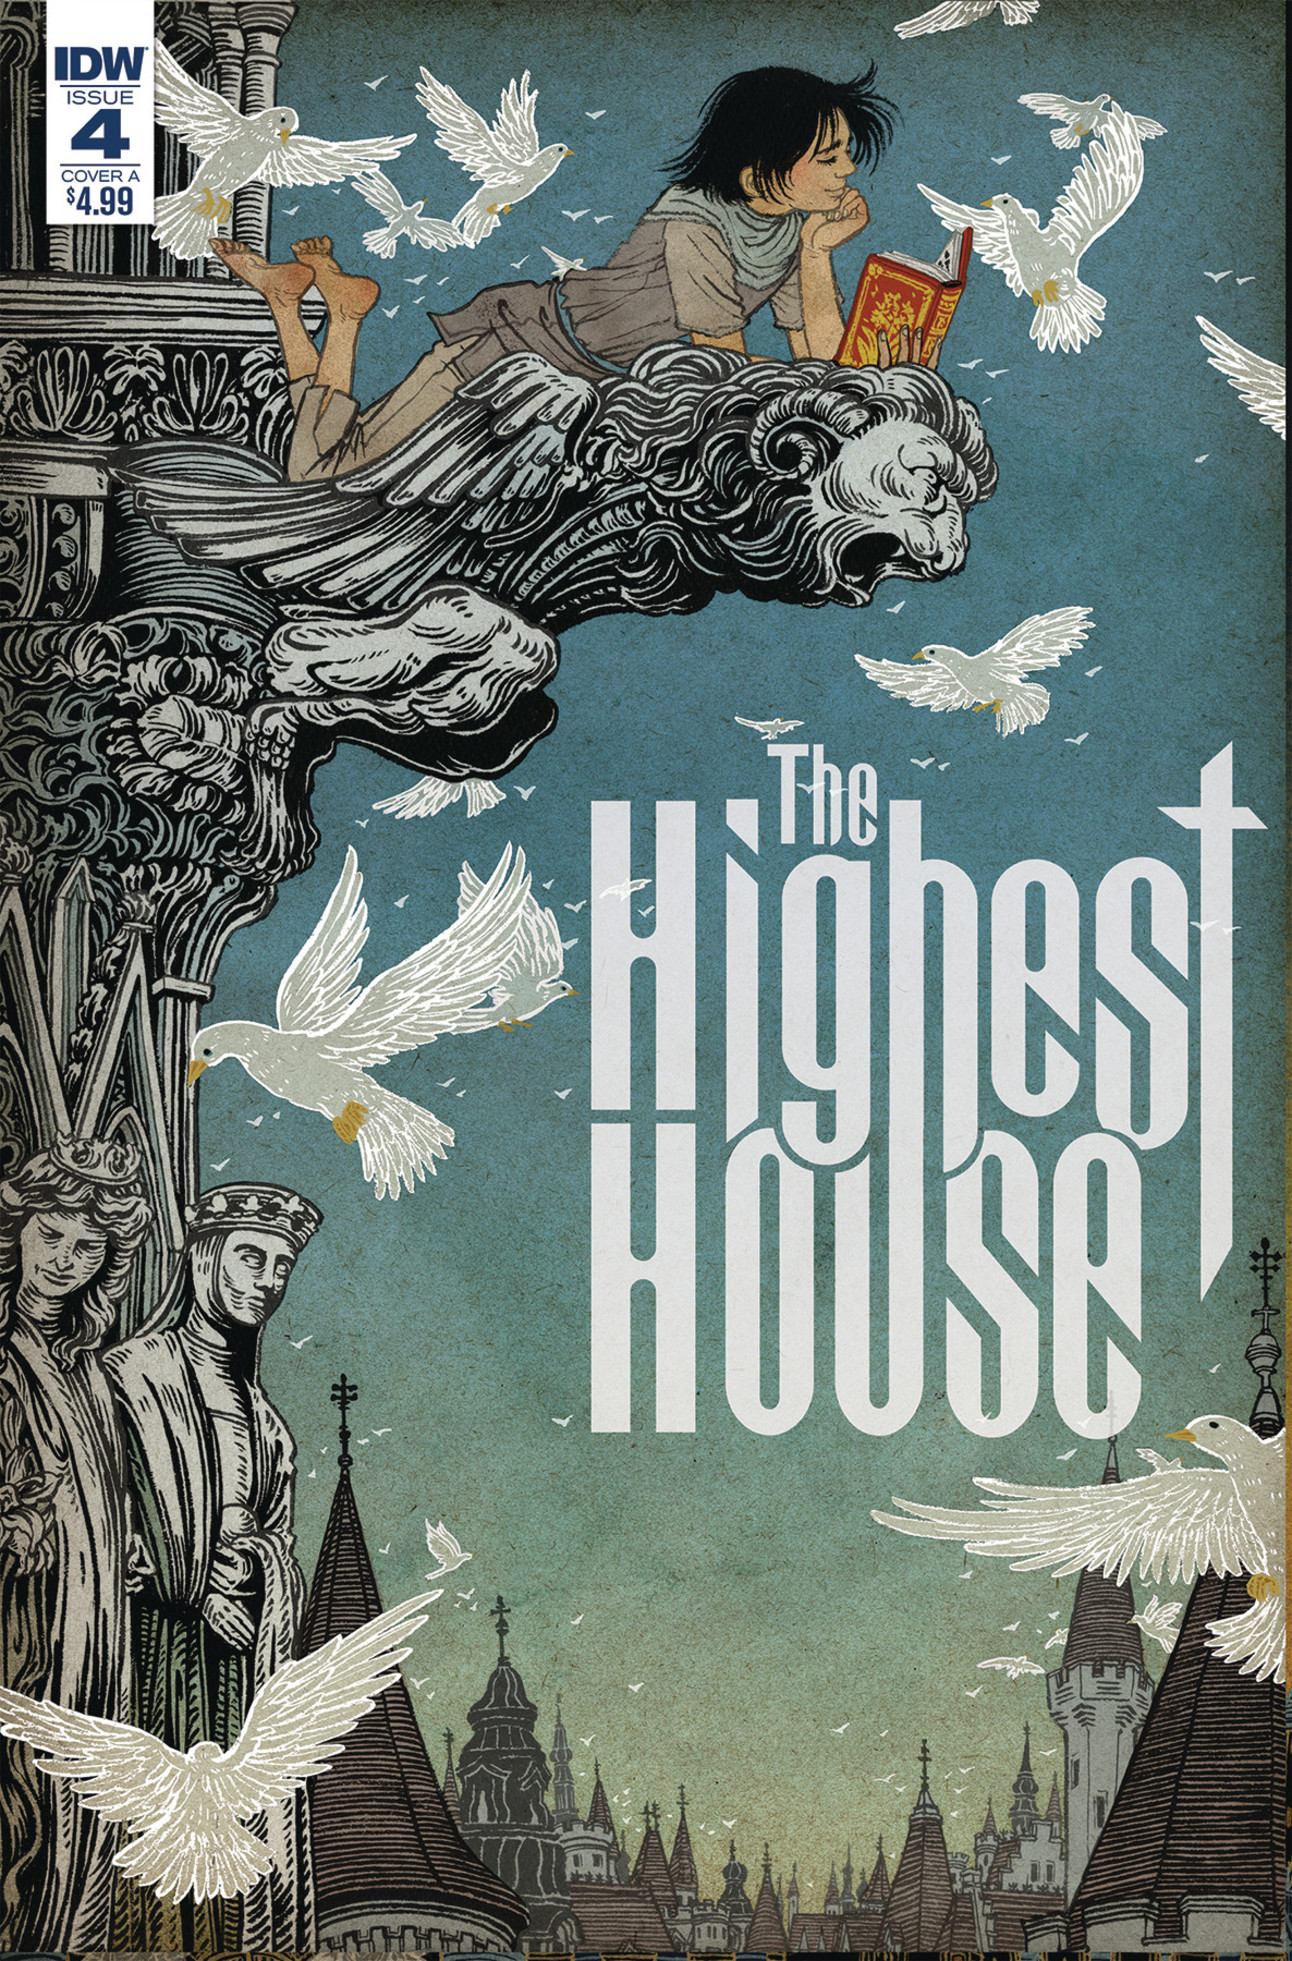 idw_highest_house_4_cover.jpg